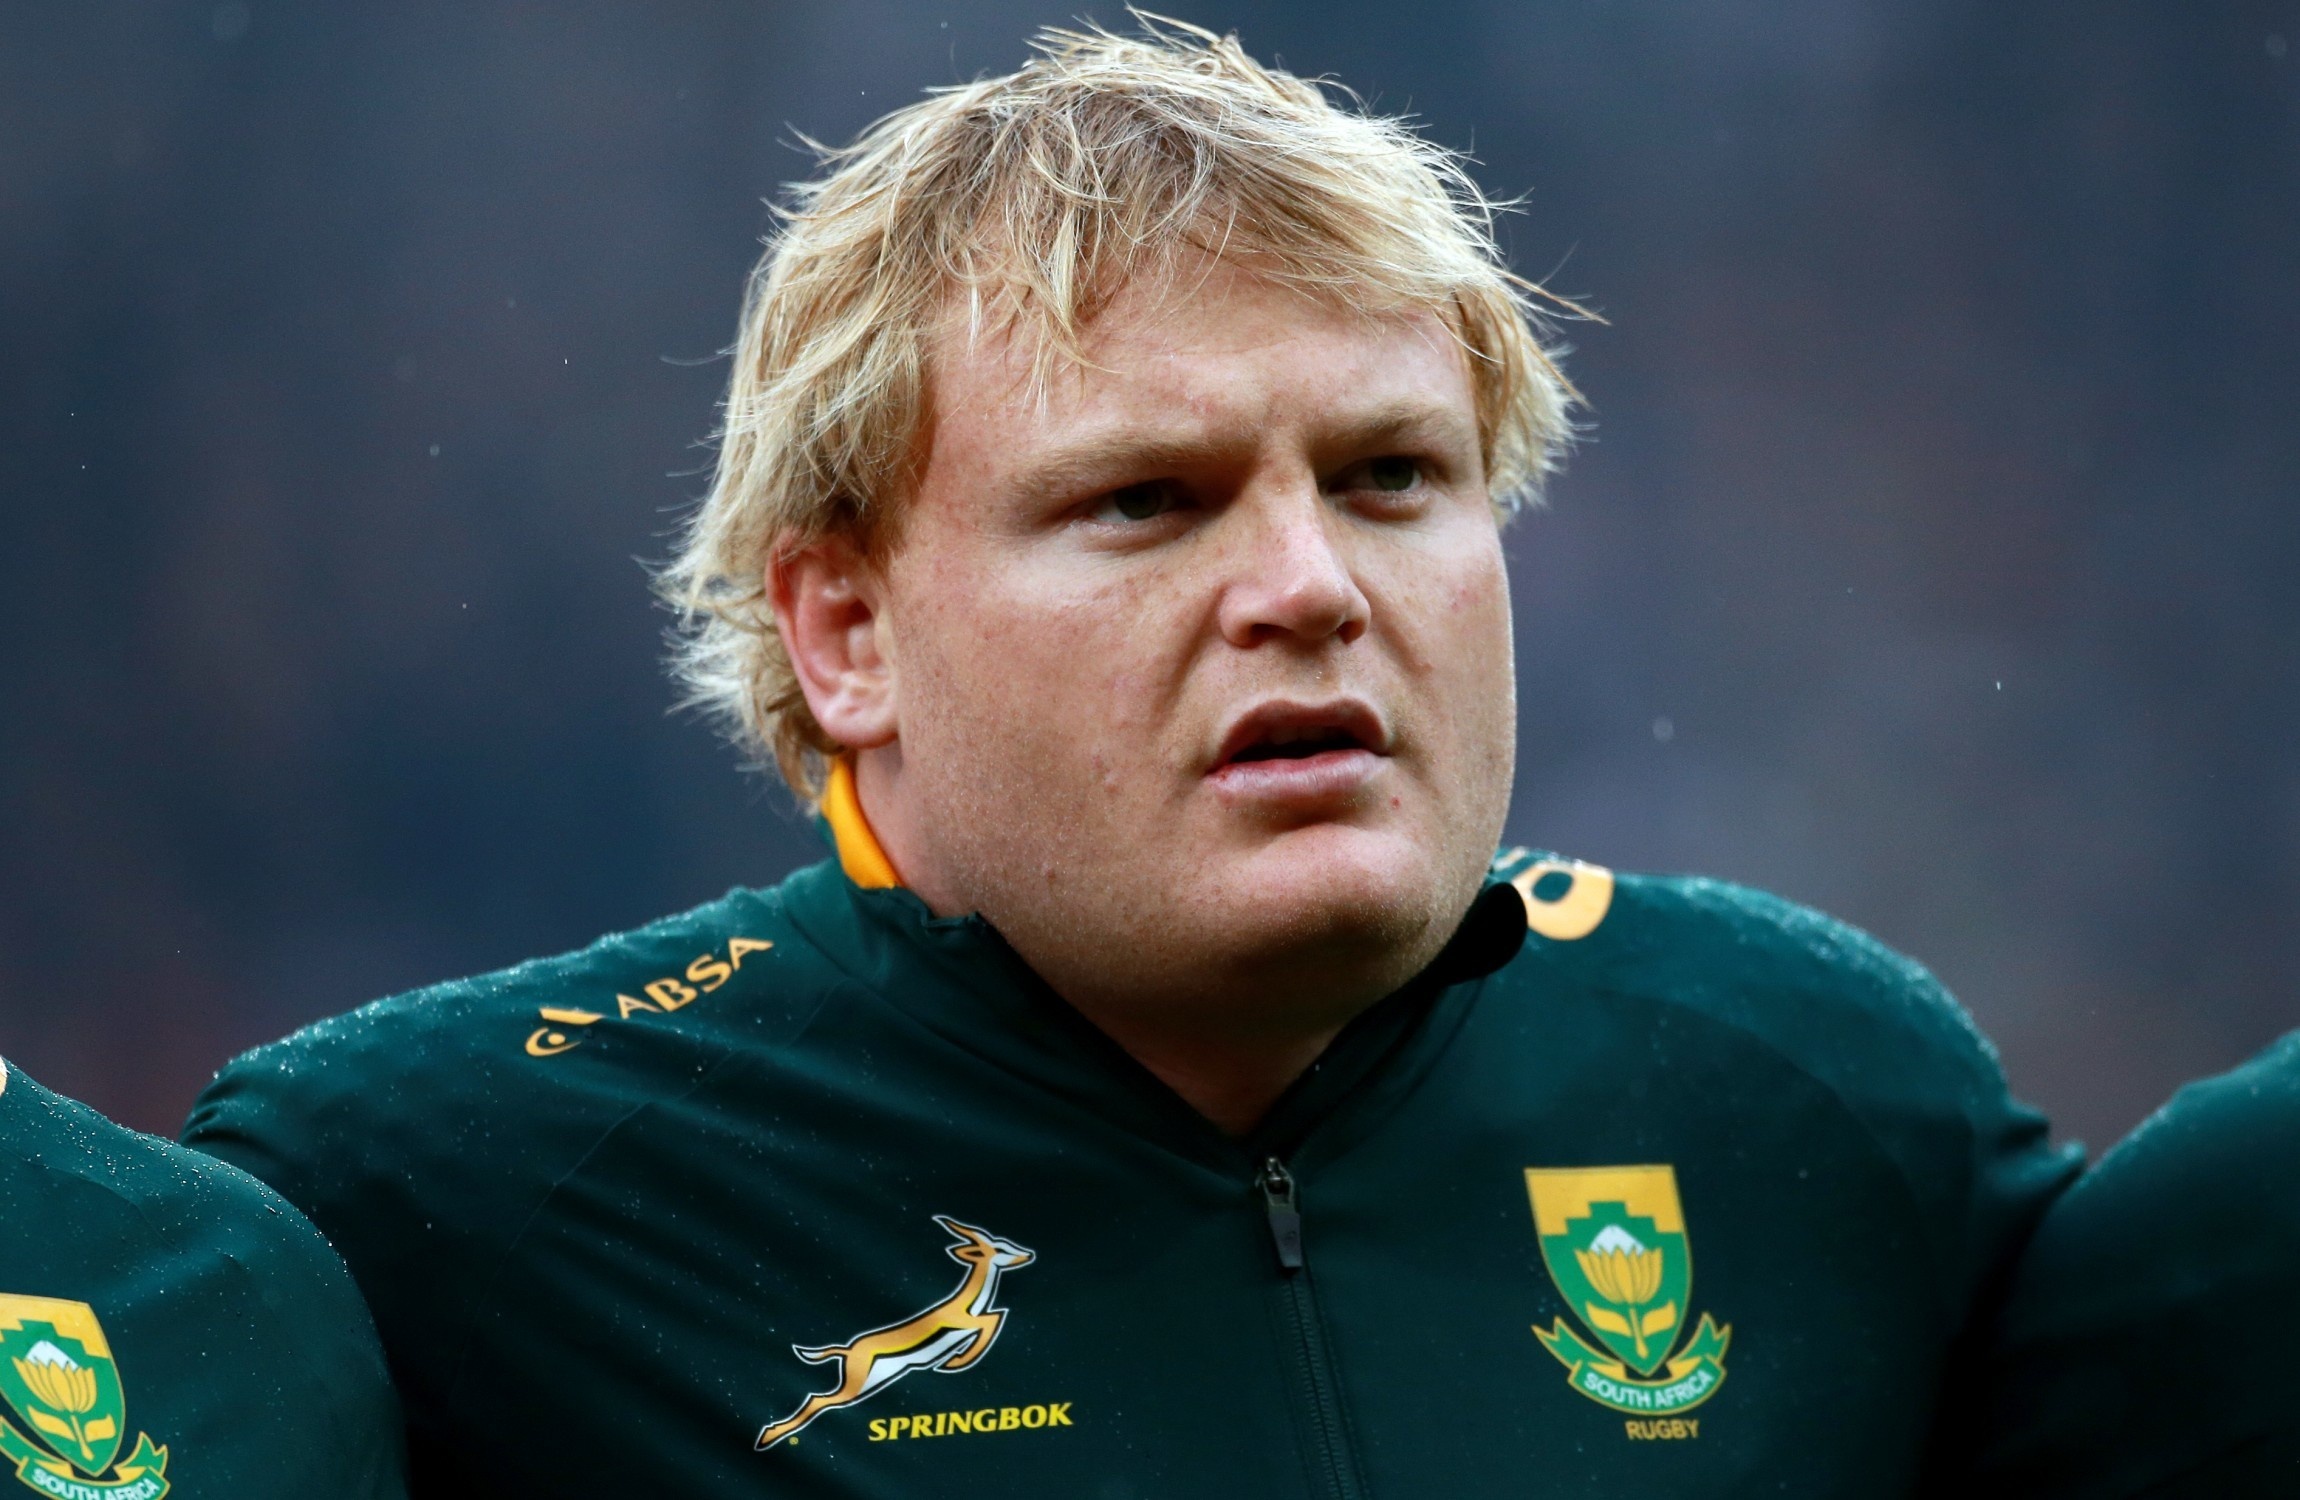 Springbock Hocker Strauss Named Springboks Captain But He Could Be Out Of A Job